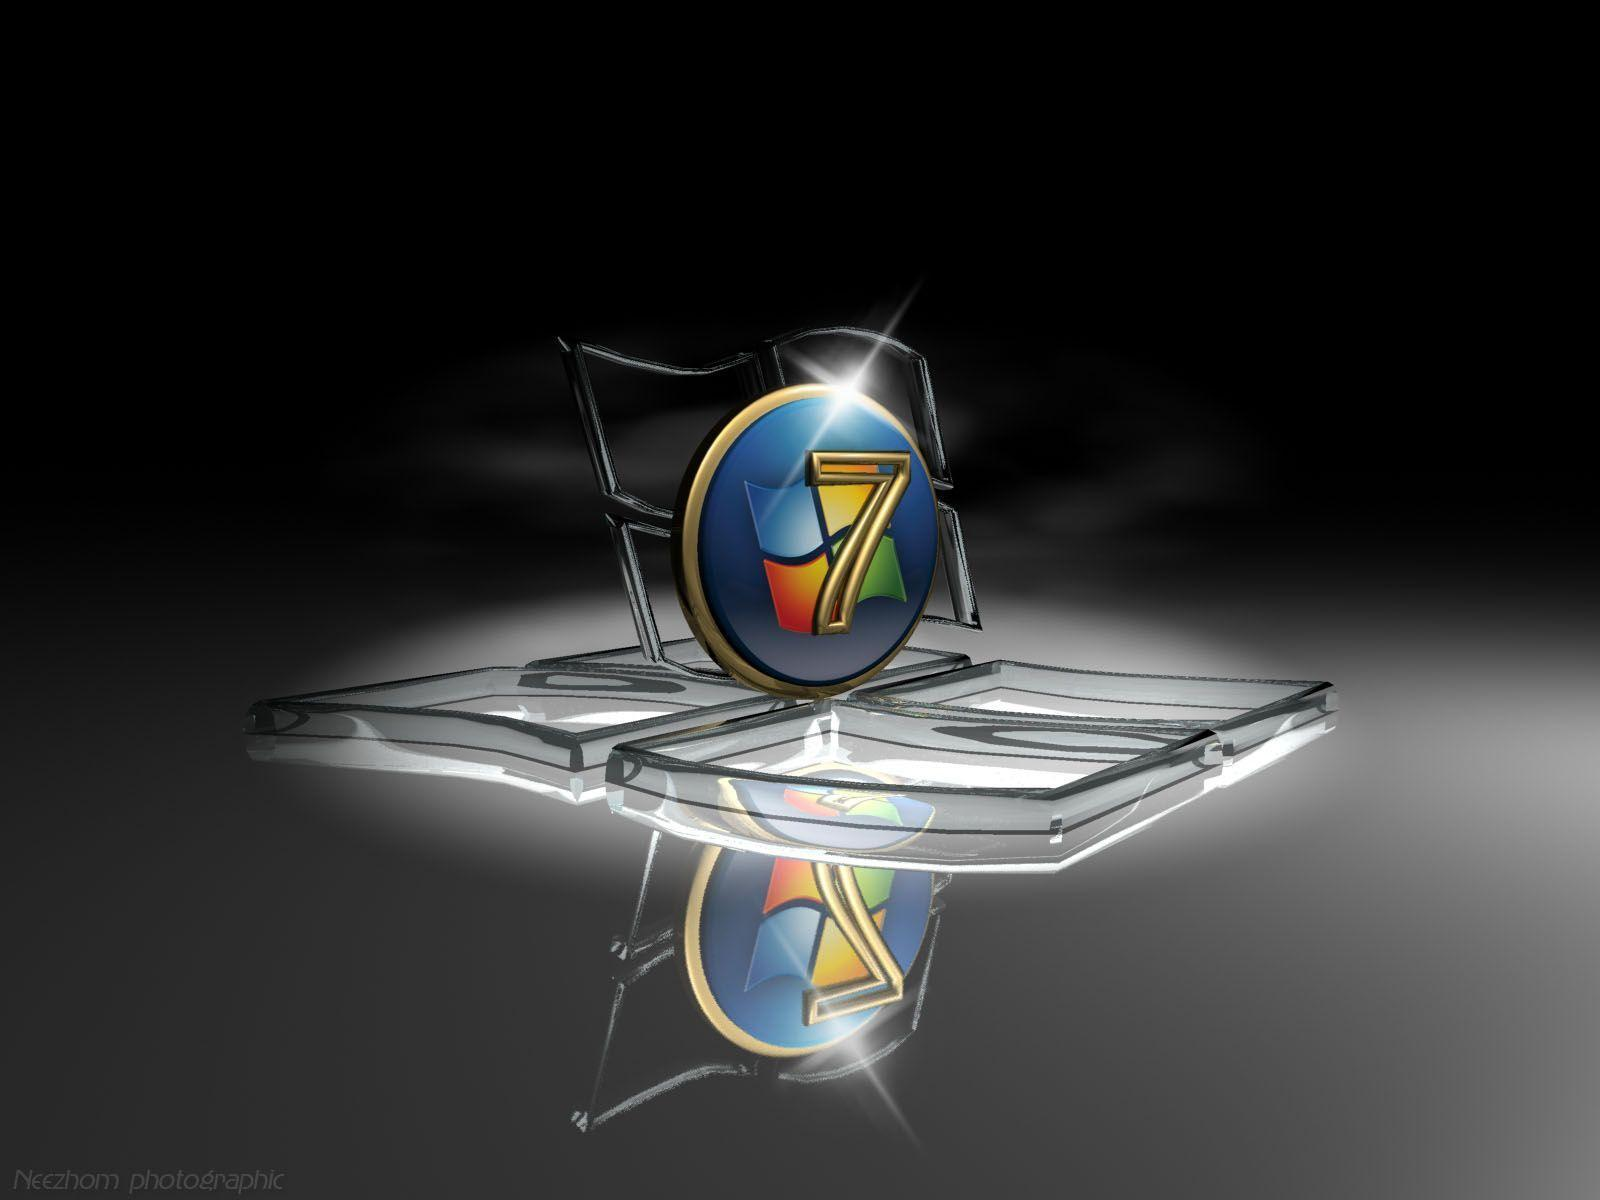 Wallpapers For > 3d PC Wallpapers Windows 7